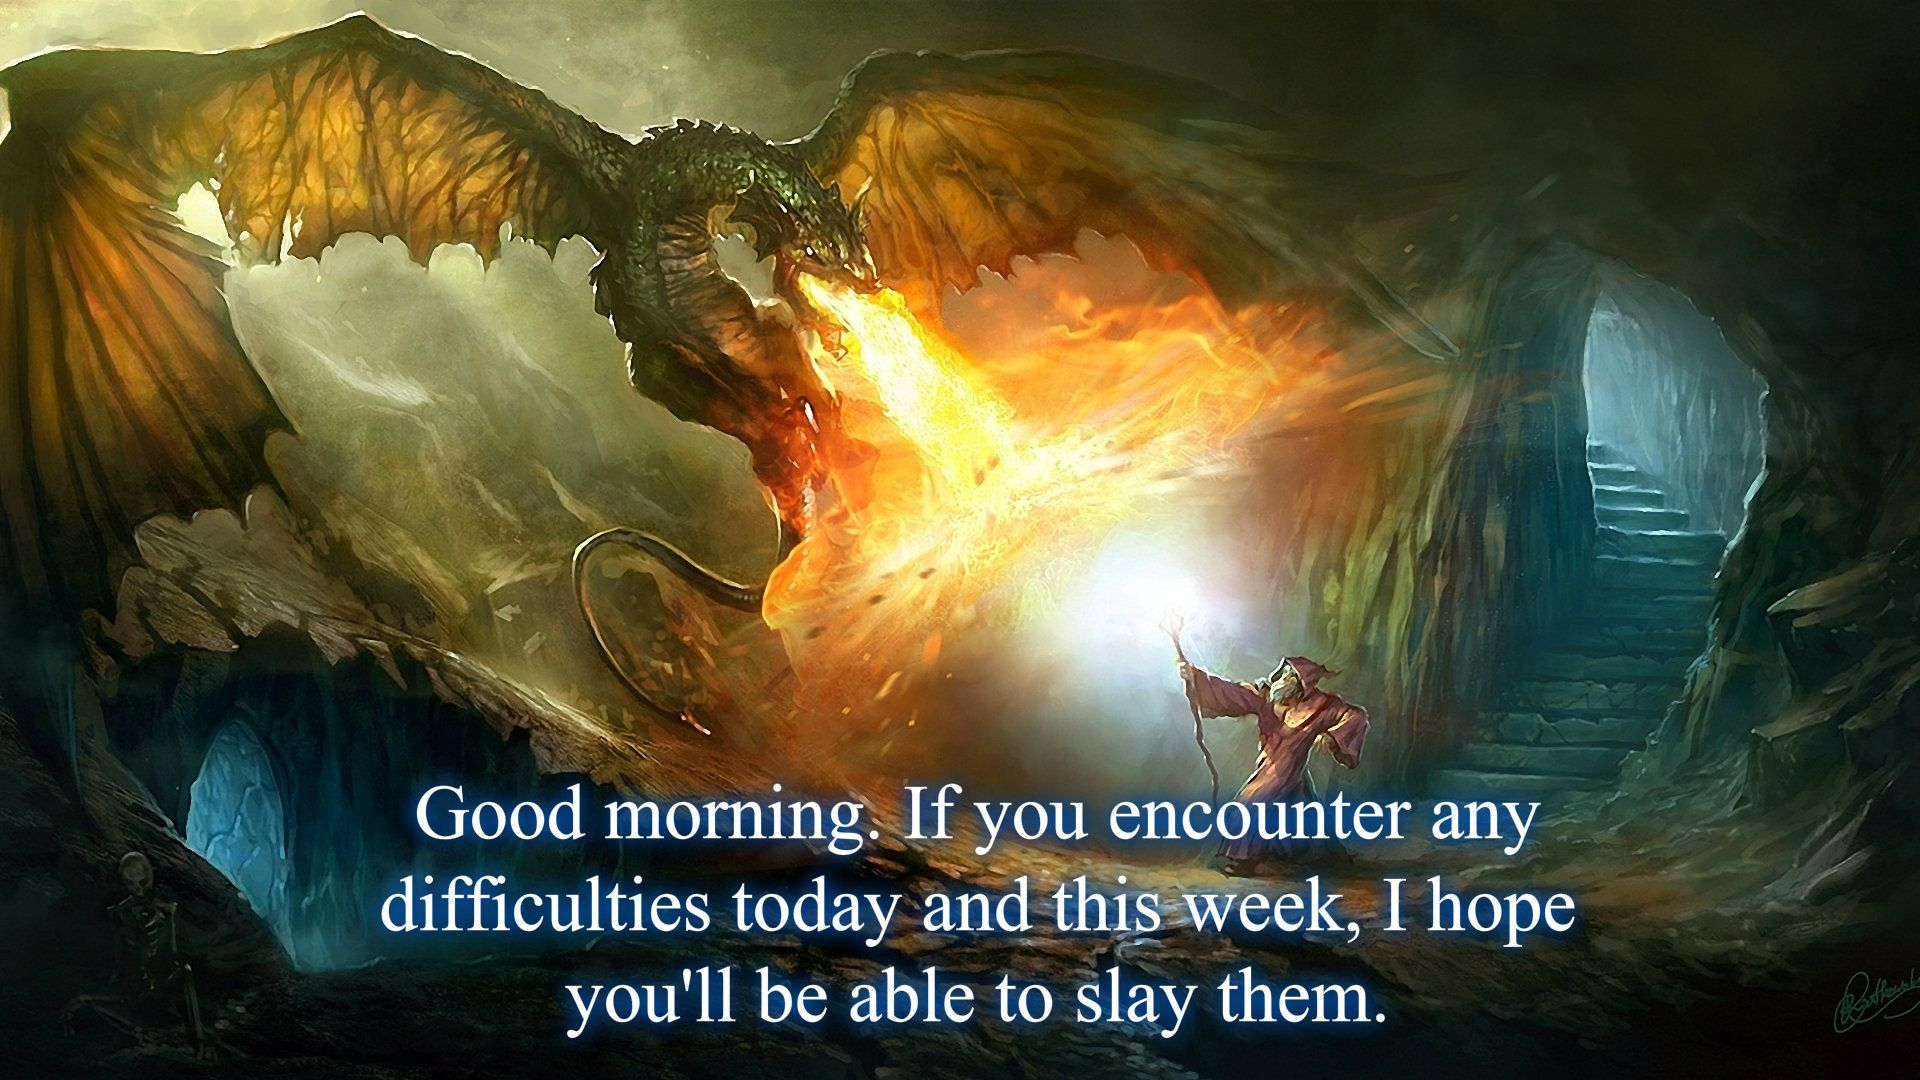 Good morning fantasy picture.